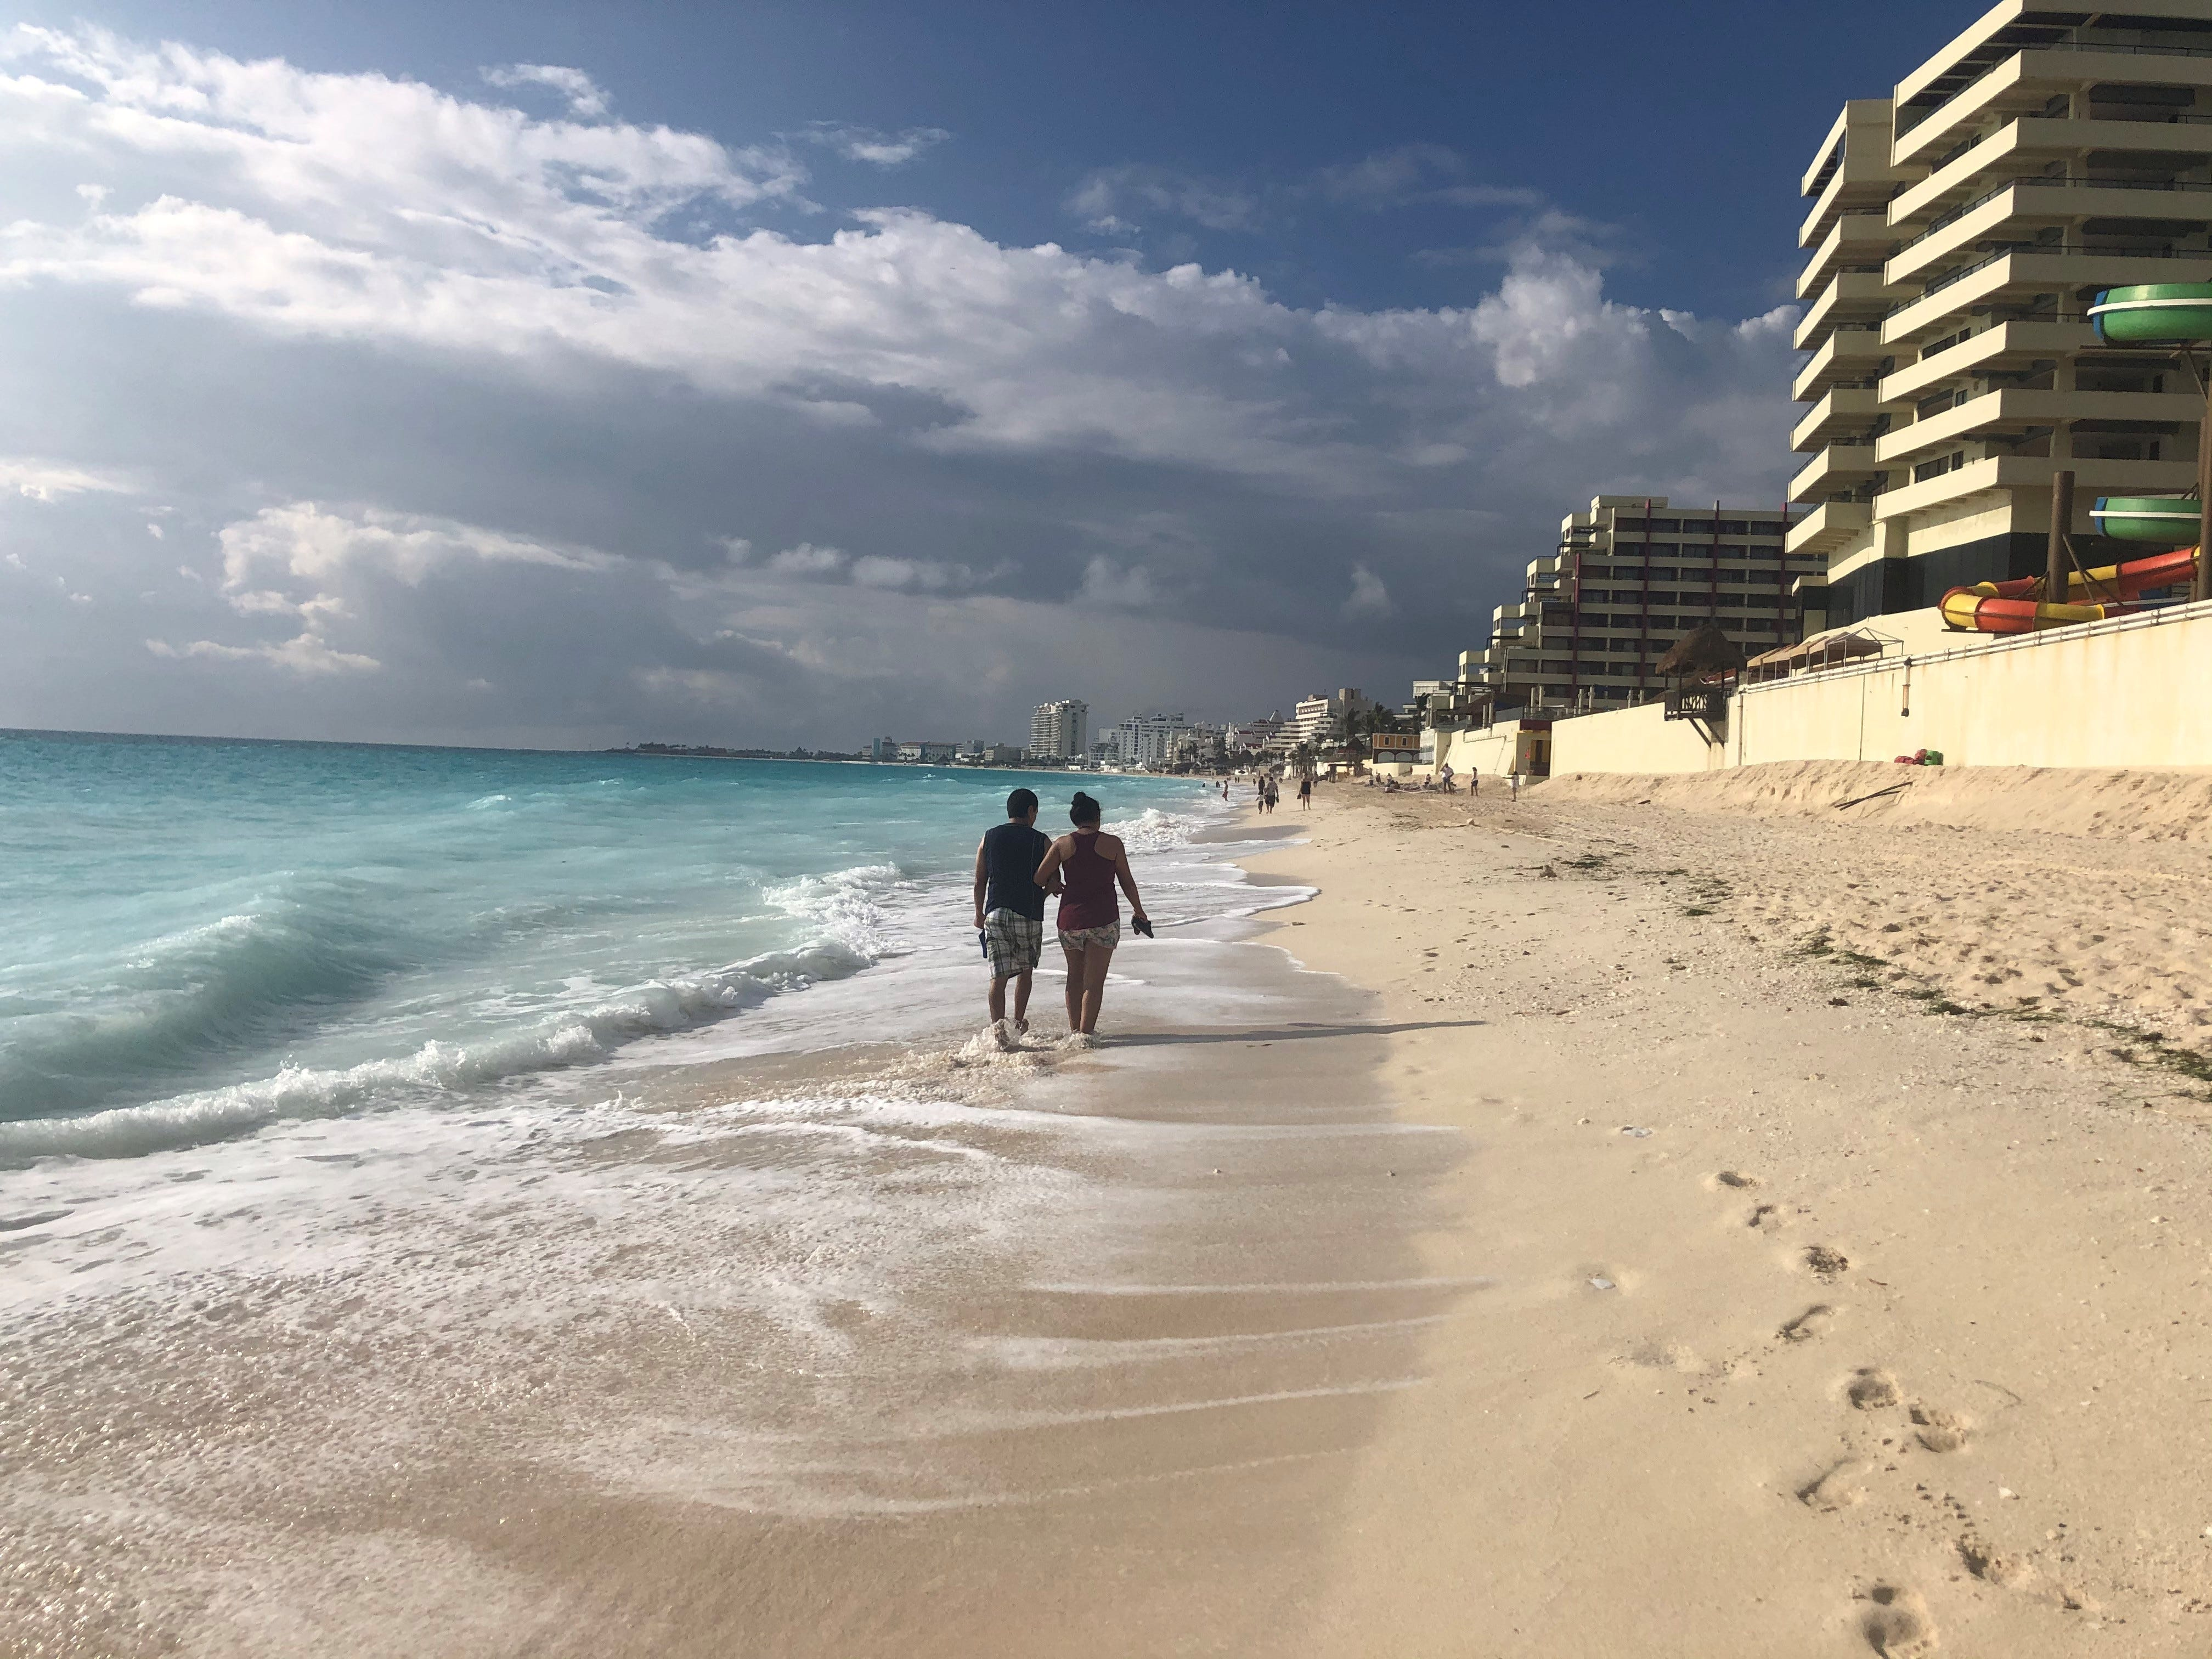 Ted Cruz escaped to Cancun during a crippling Texas storm in a pandemic, and travelers have so many questions